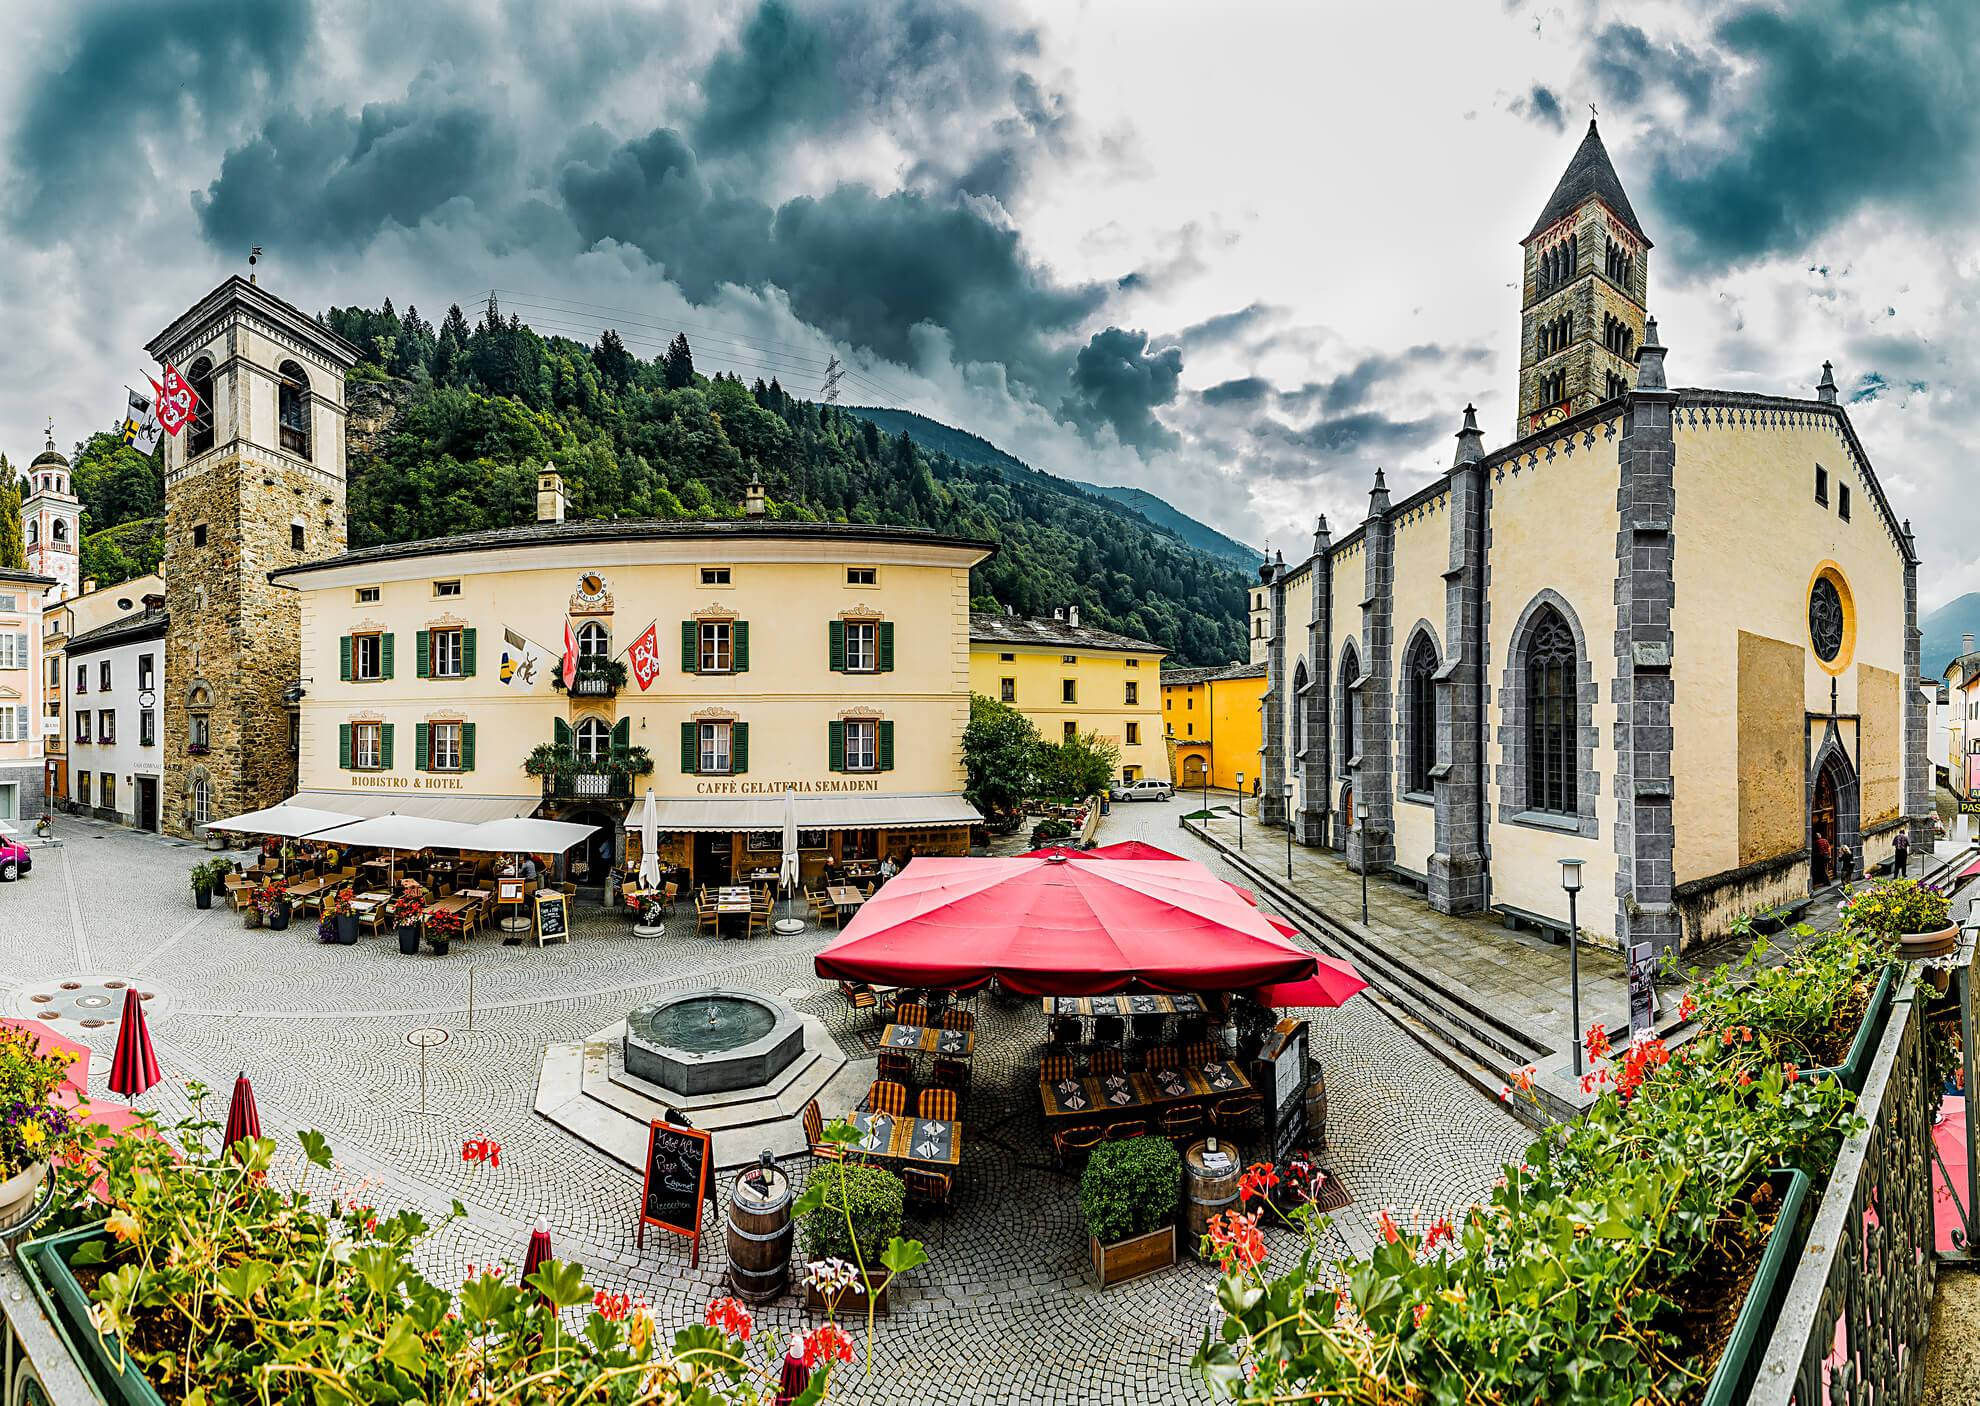 The Square of Poschiavo